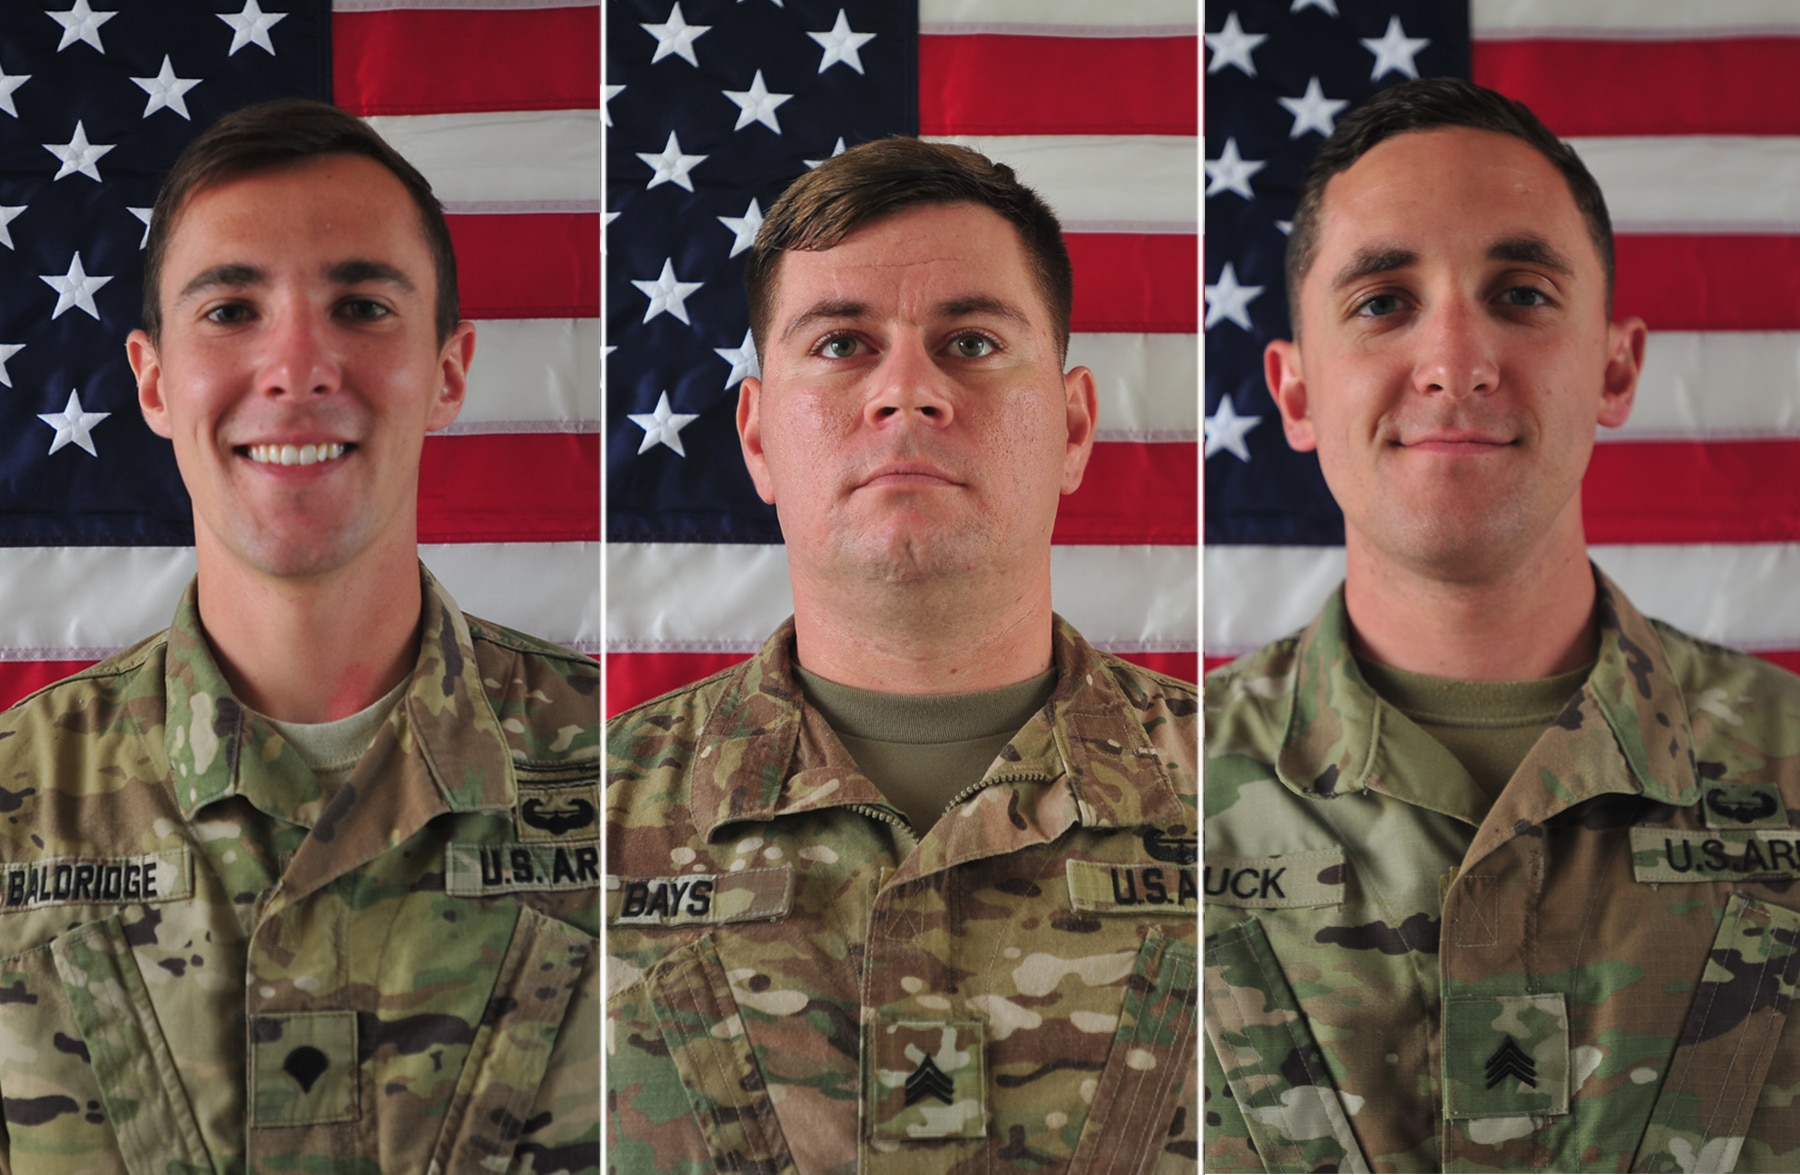 Army identifies victims of apparent insider attack in Afghanistan